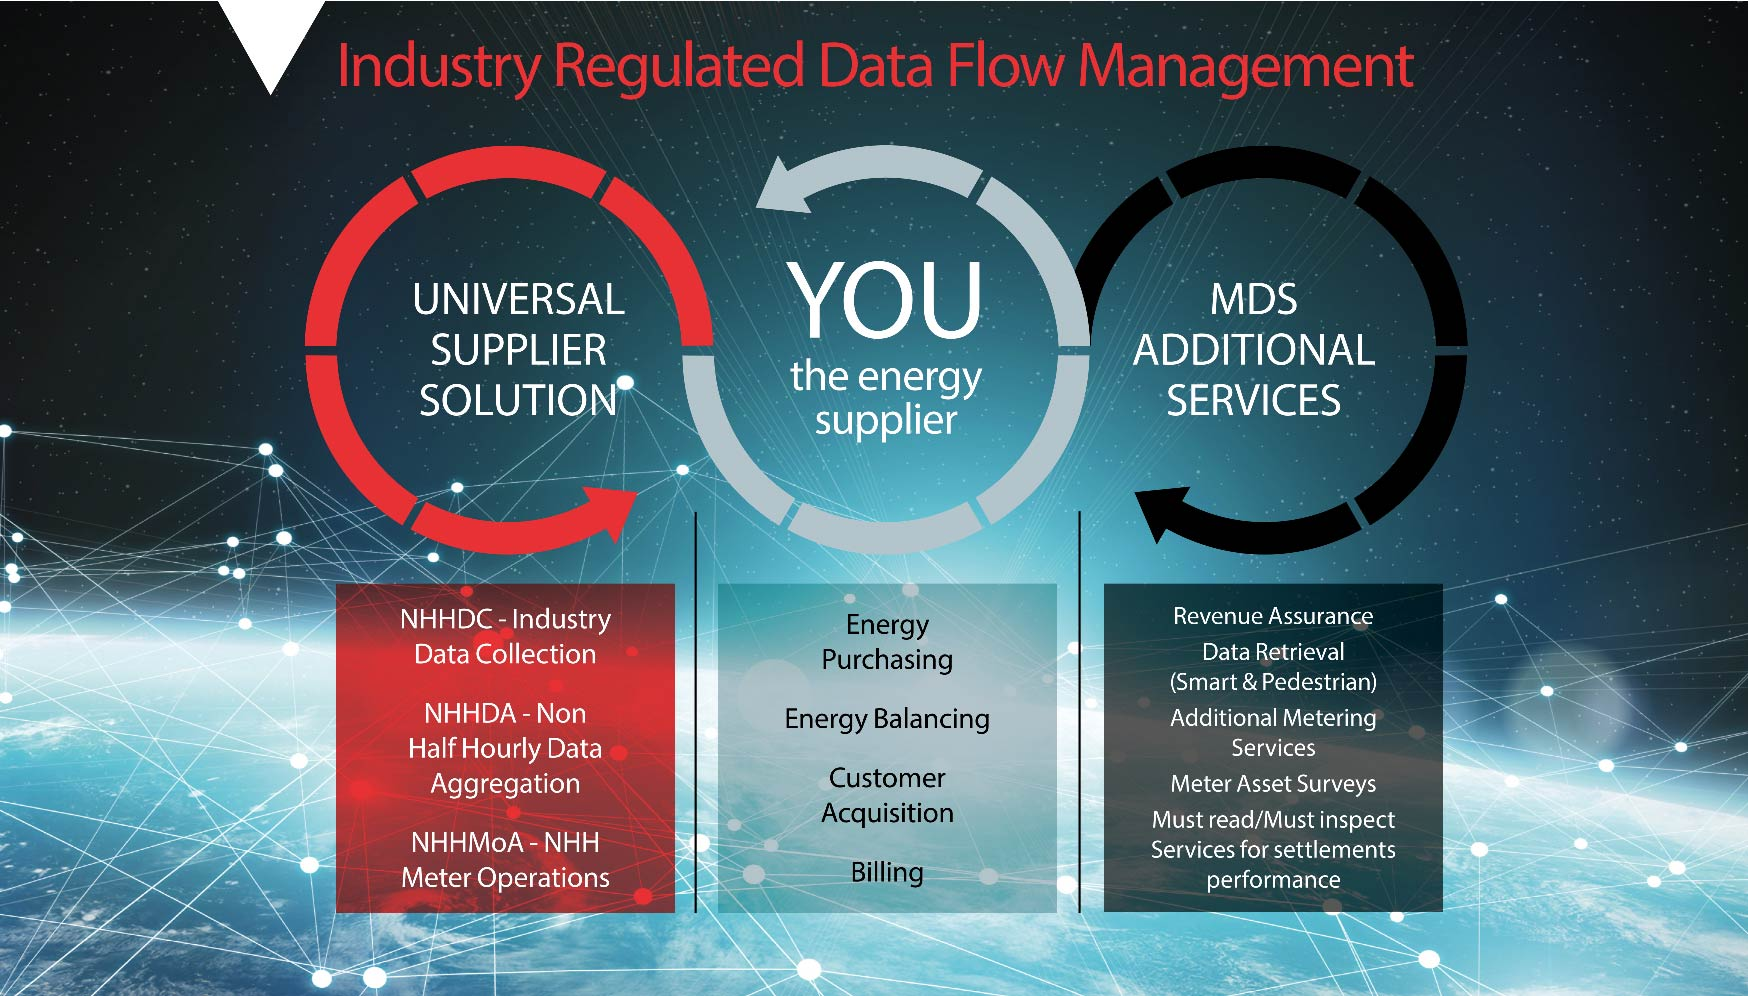 Industry Regulated Data Flow Management